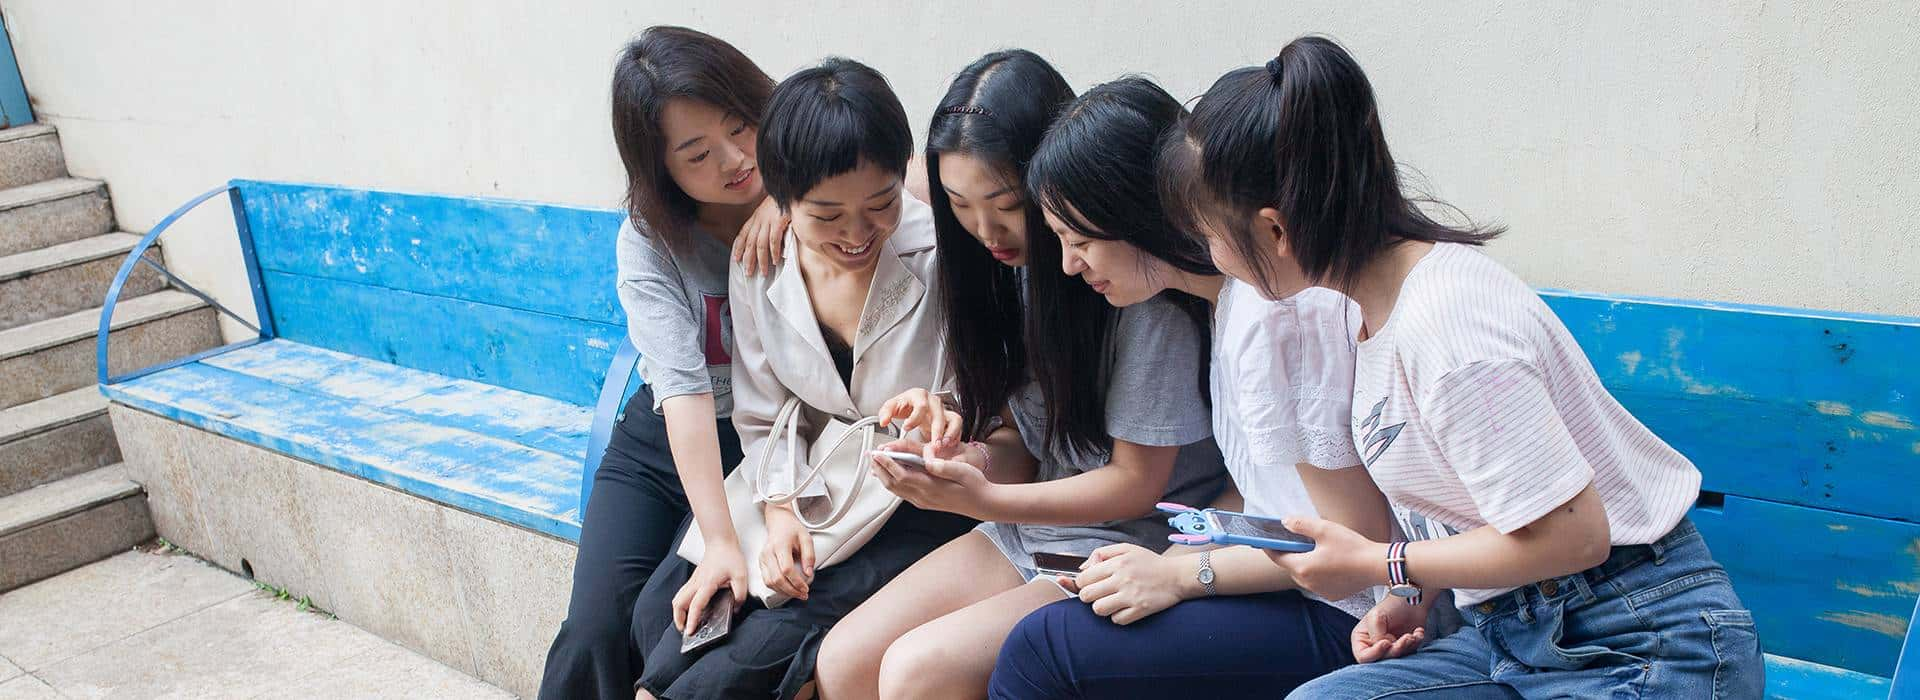 Five young Chinese women using social media